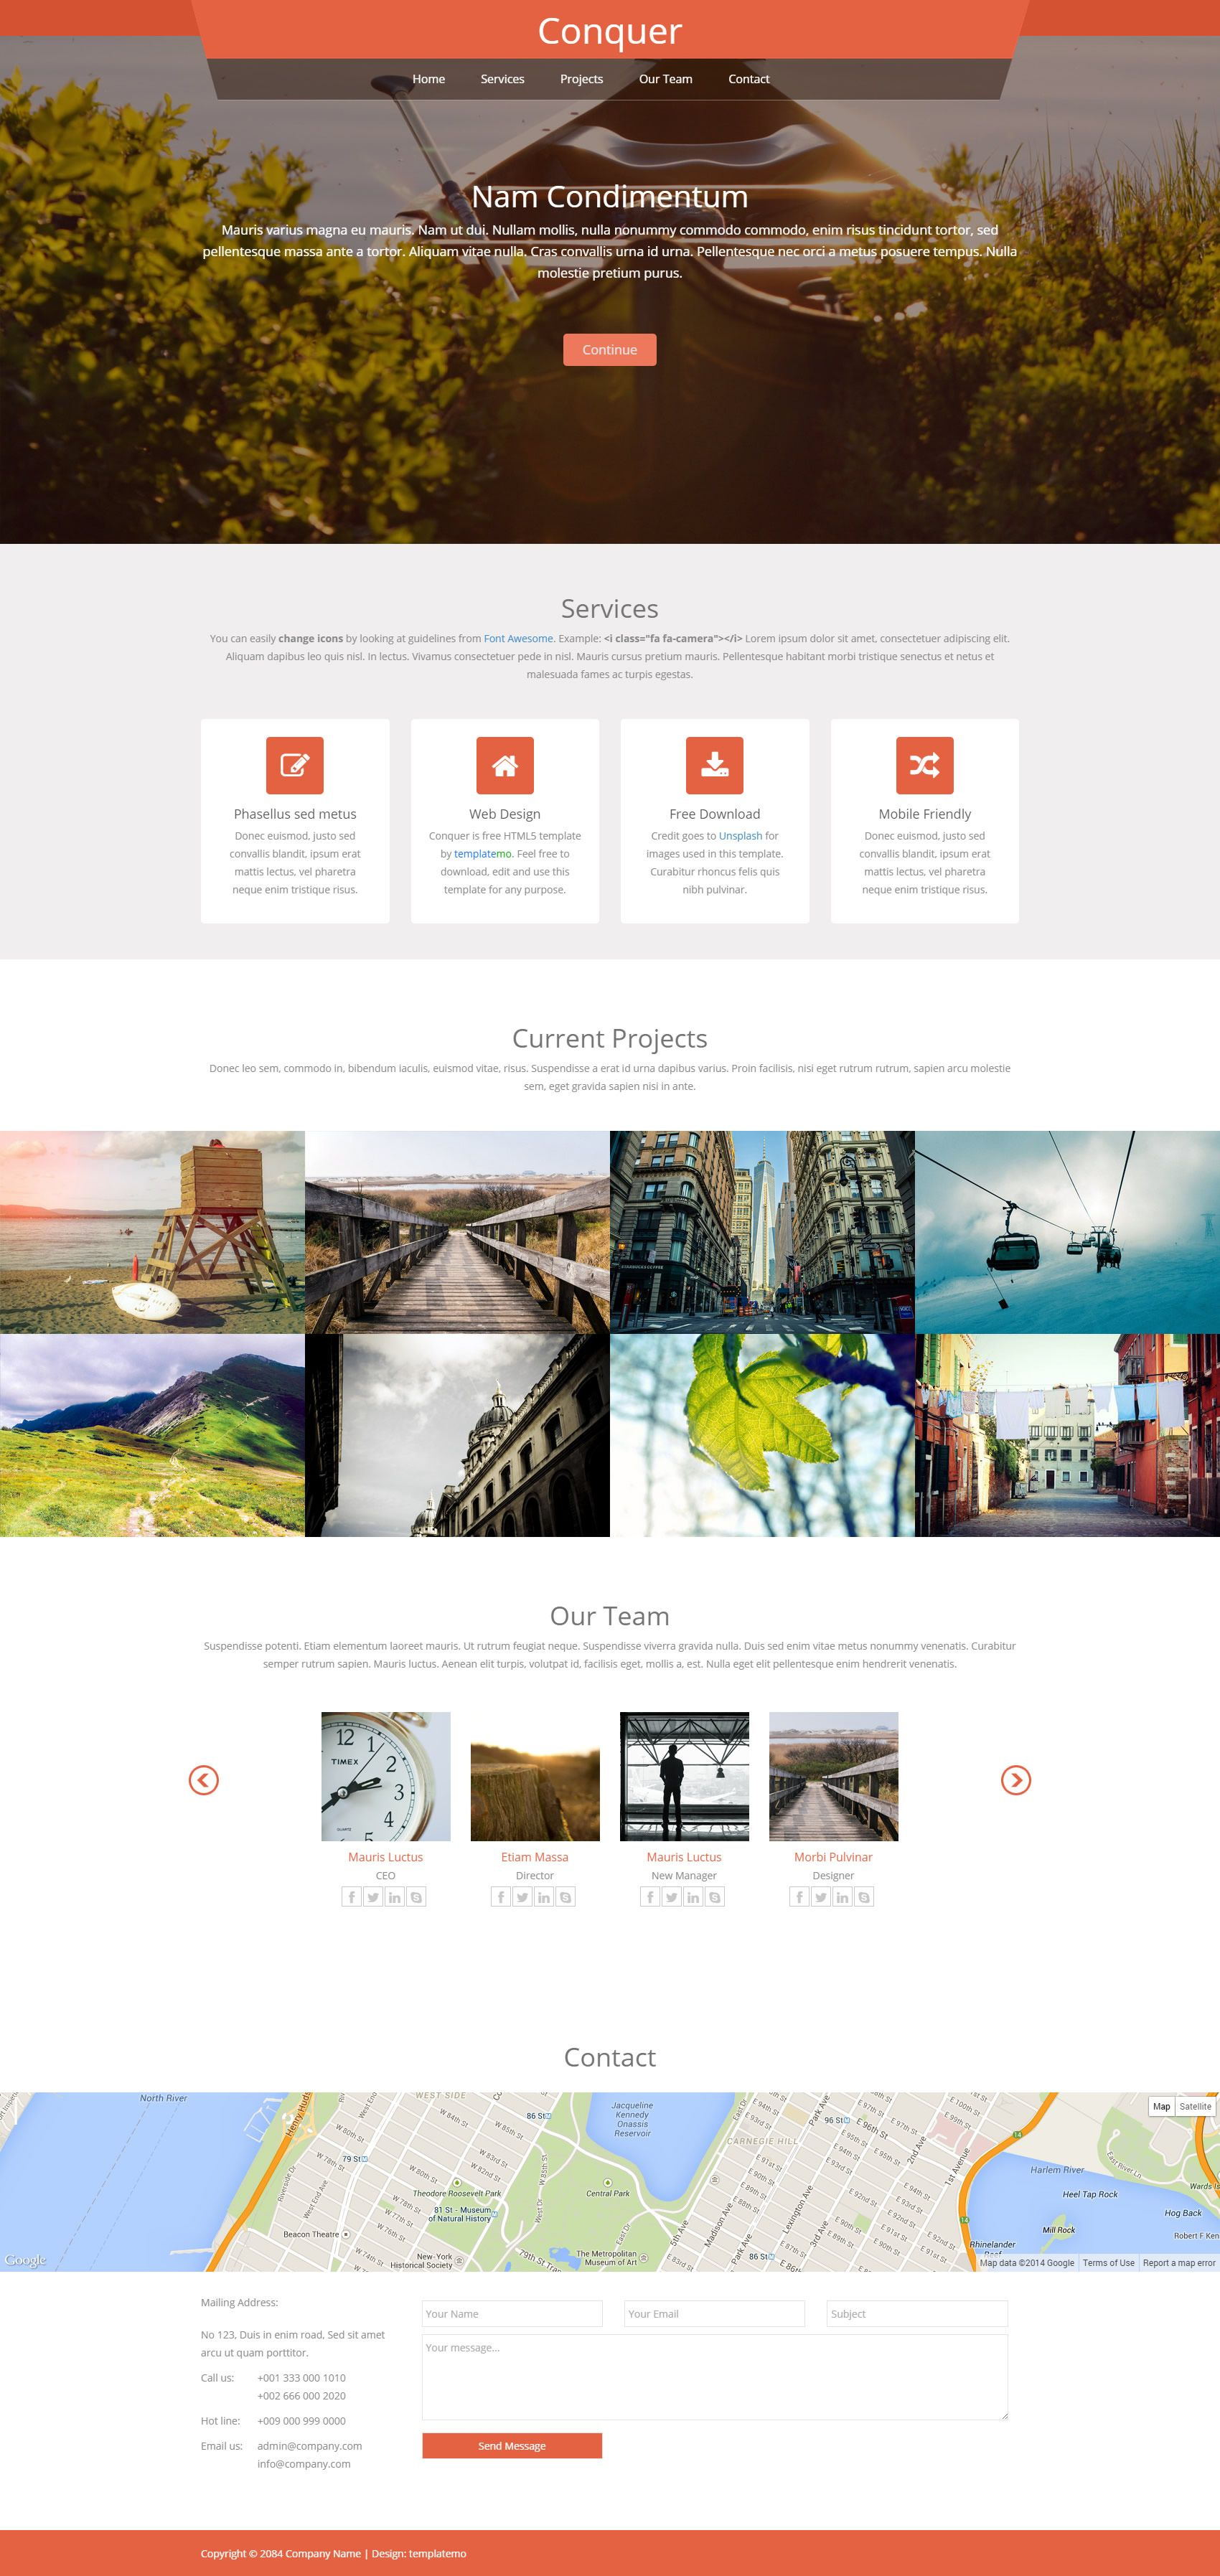 Conquer is free responsive template with Bootstrap v3 1 1 and it is